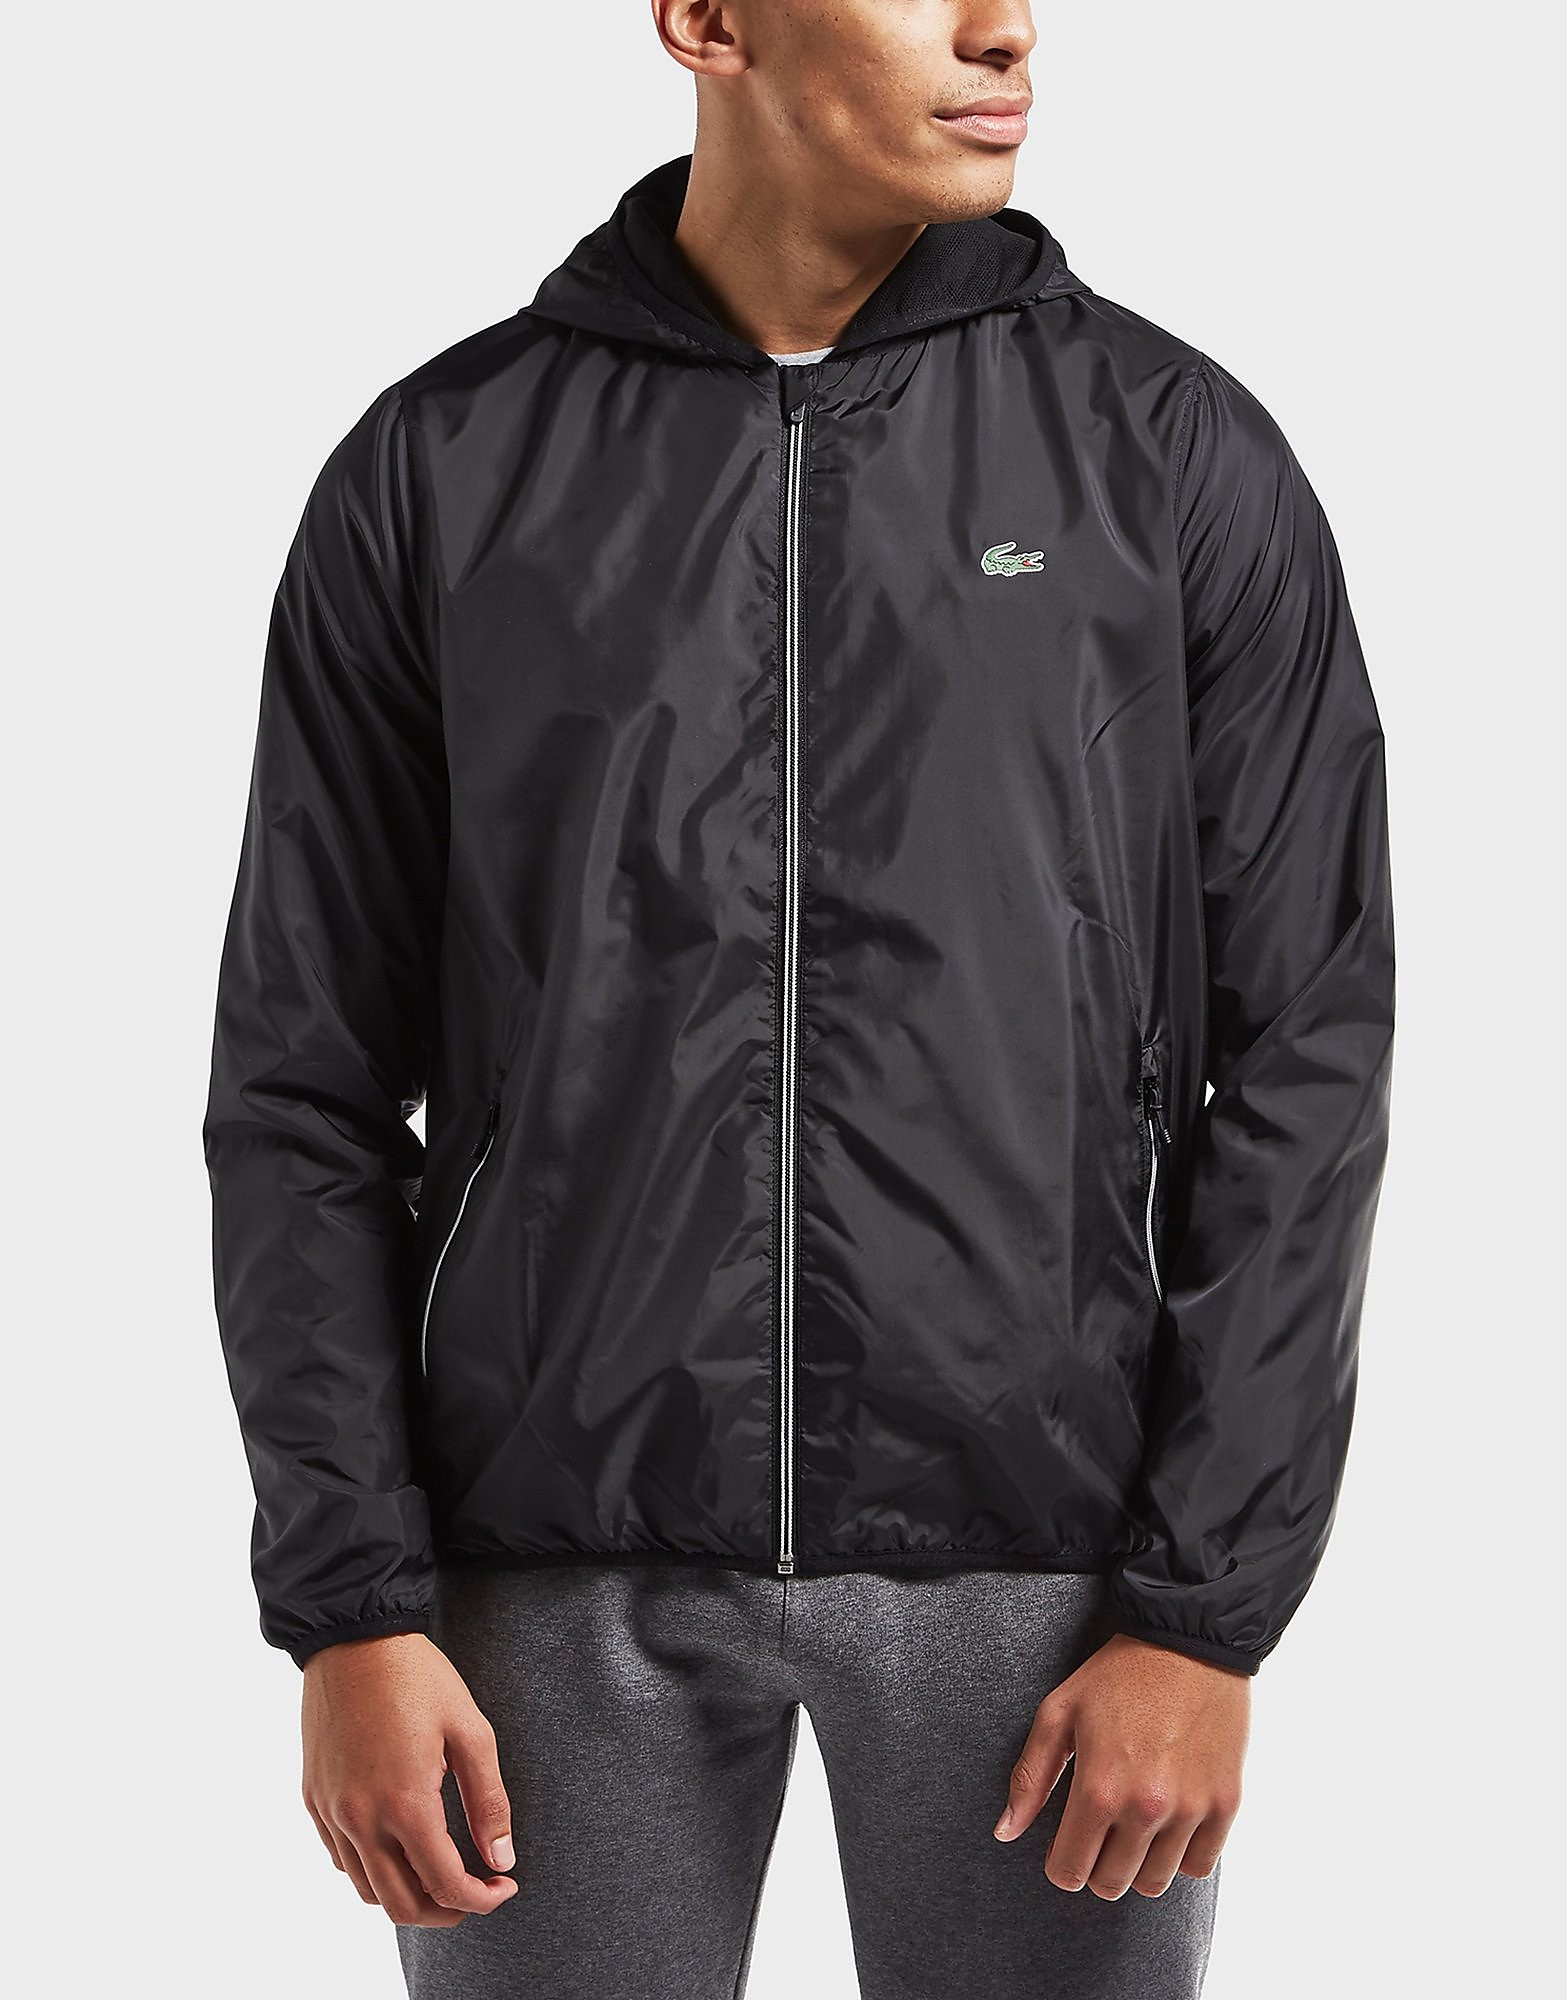 Lacoste Lightweight Hooded Jacket